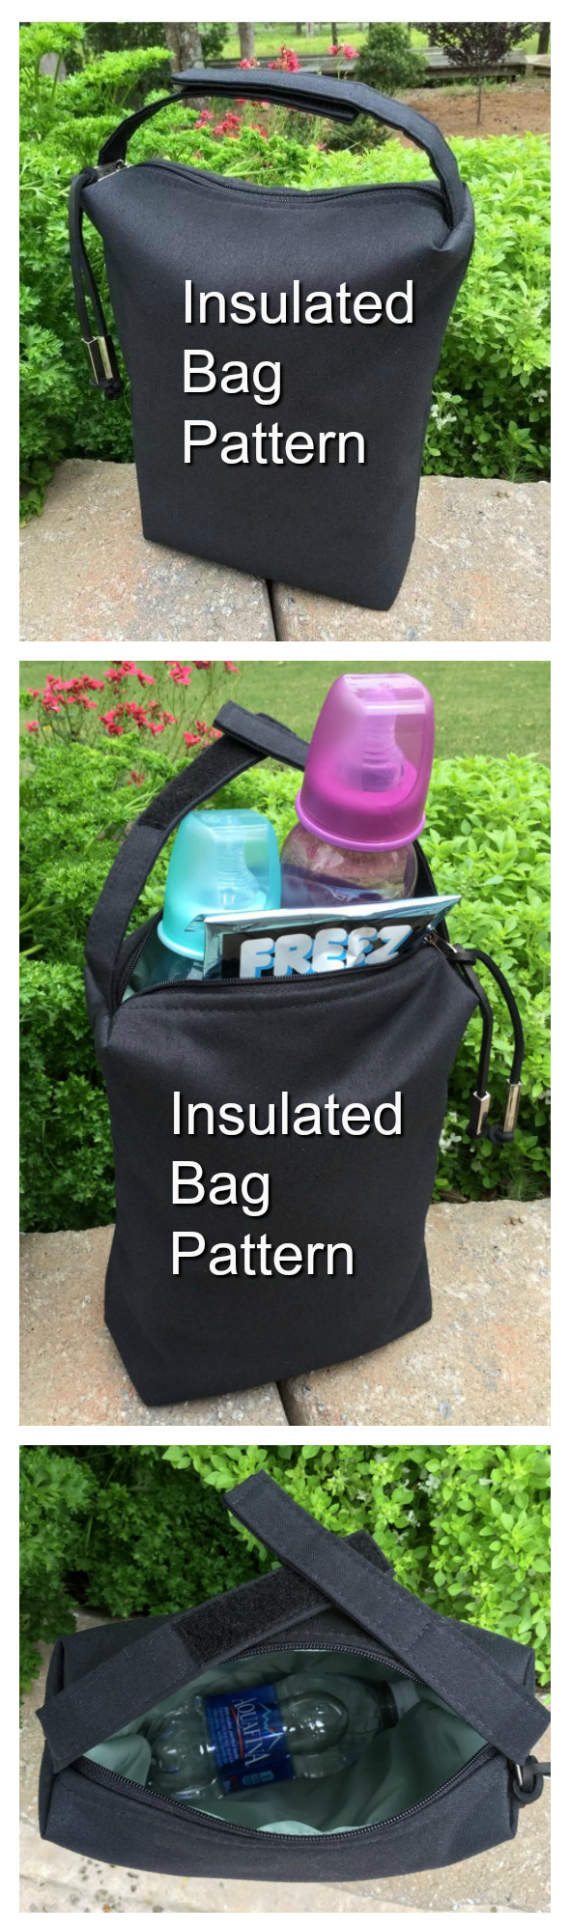 Insulated Lunch Bag sewing pattern